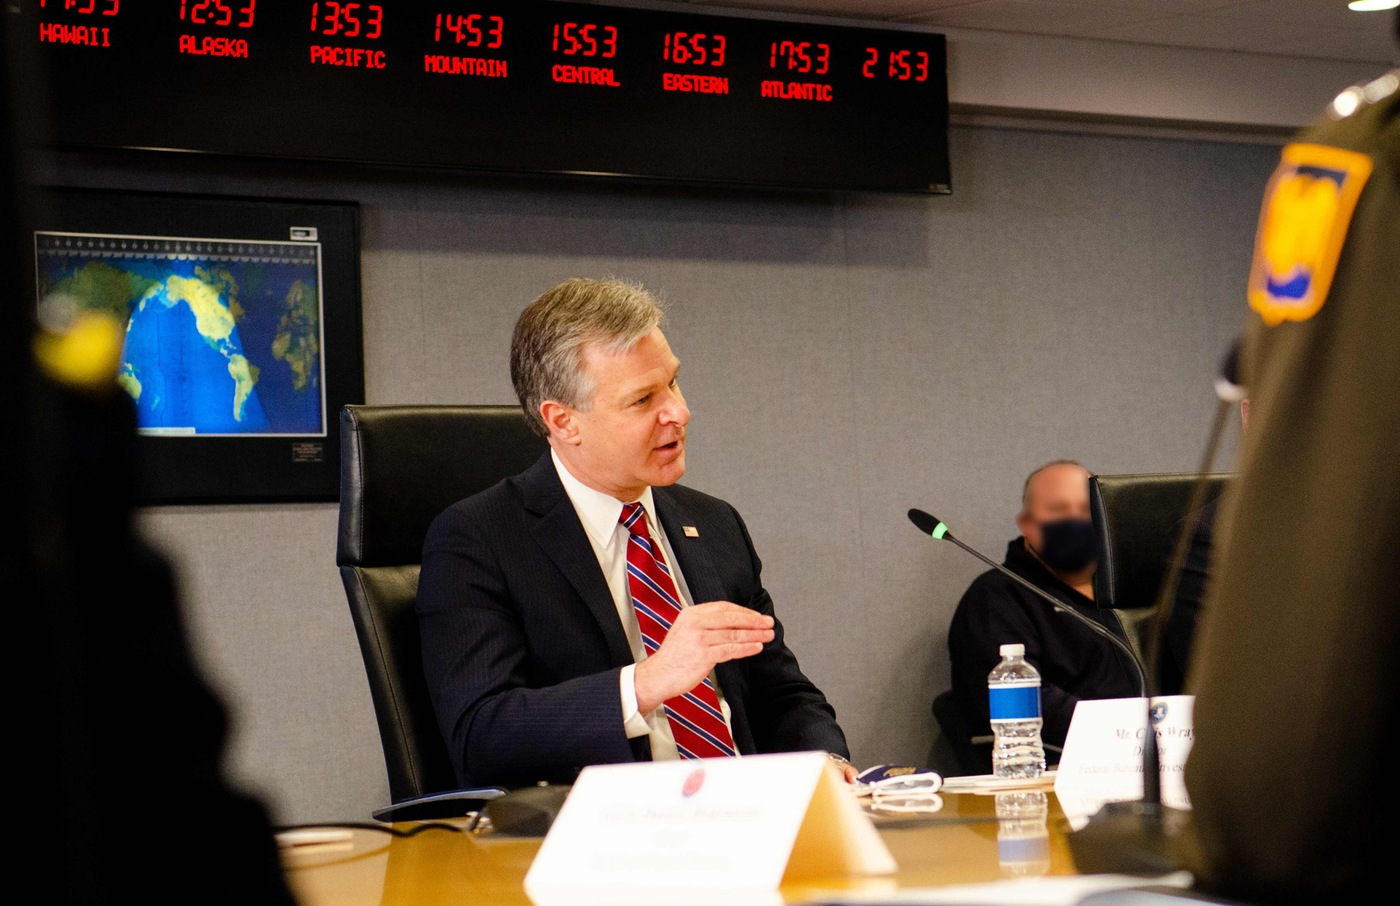 FBI Director Christopher Wray speaks during an inauguration security briefing to Vice President Mike Pence with other agency officials at FEMA Headquarters in Washington, D.C. on January 14, 2021.